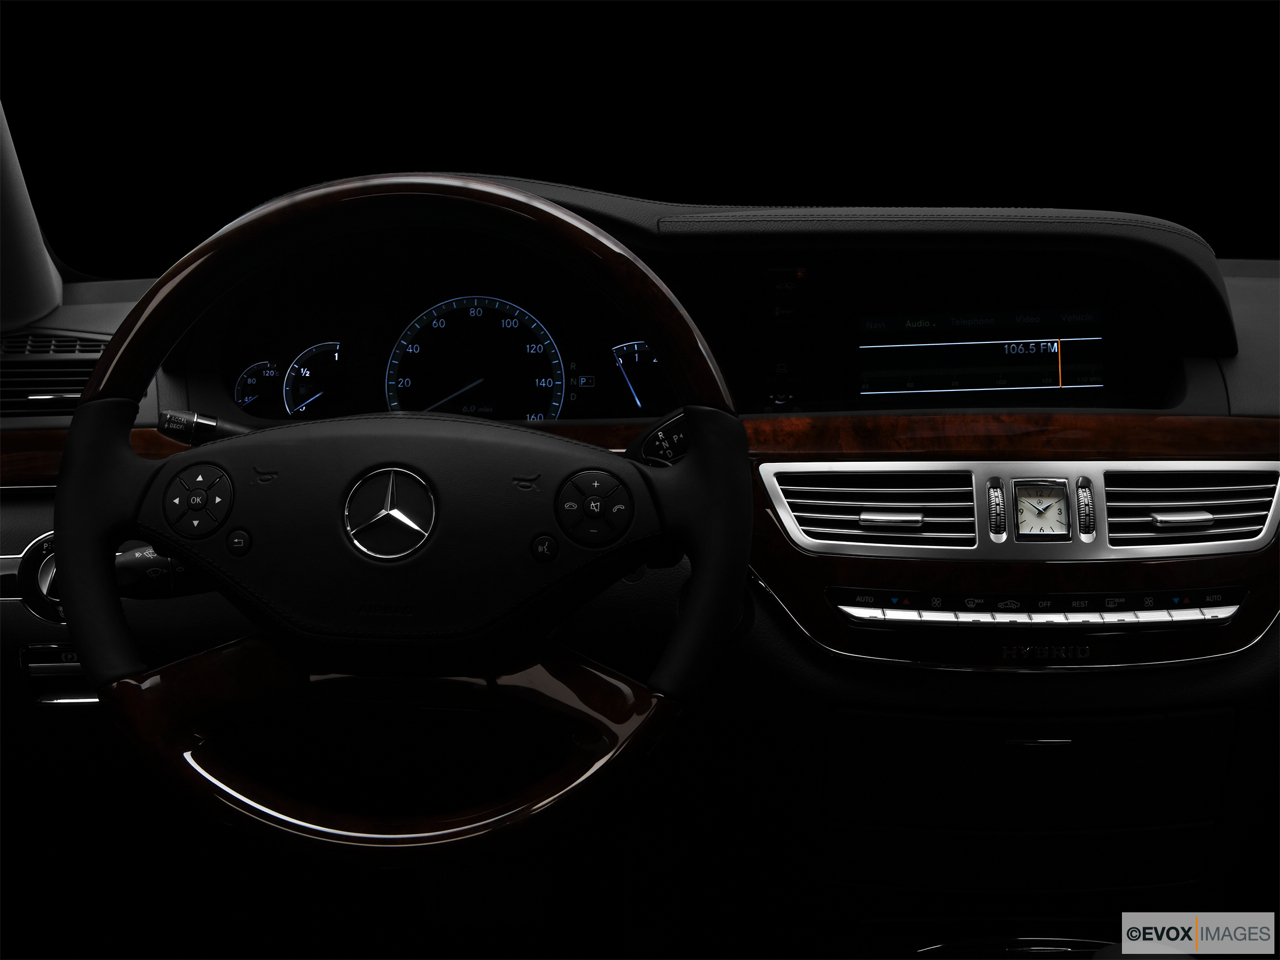 "2010 Mercedes-Benz S-Class Hybrid S400 Centered wide dash shot - ""night"" shot."